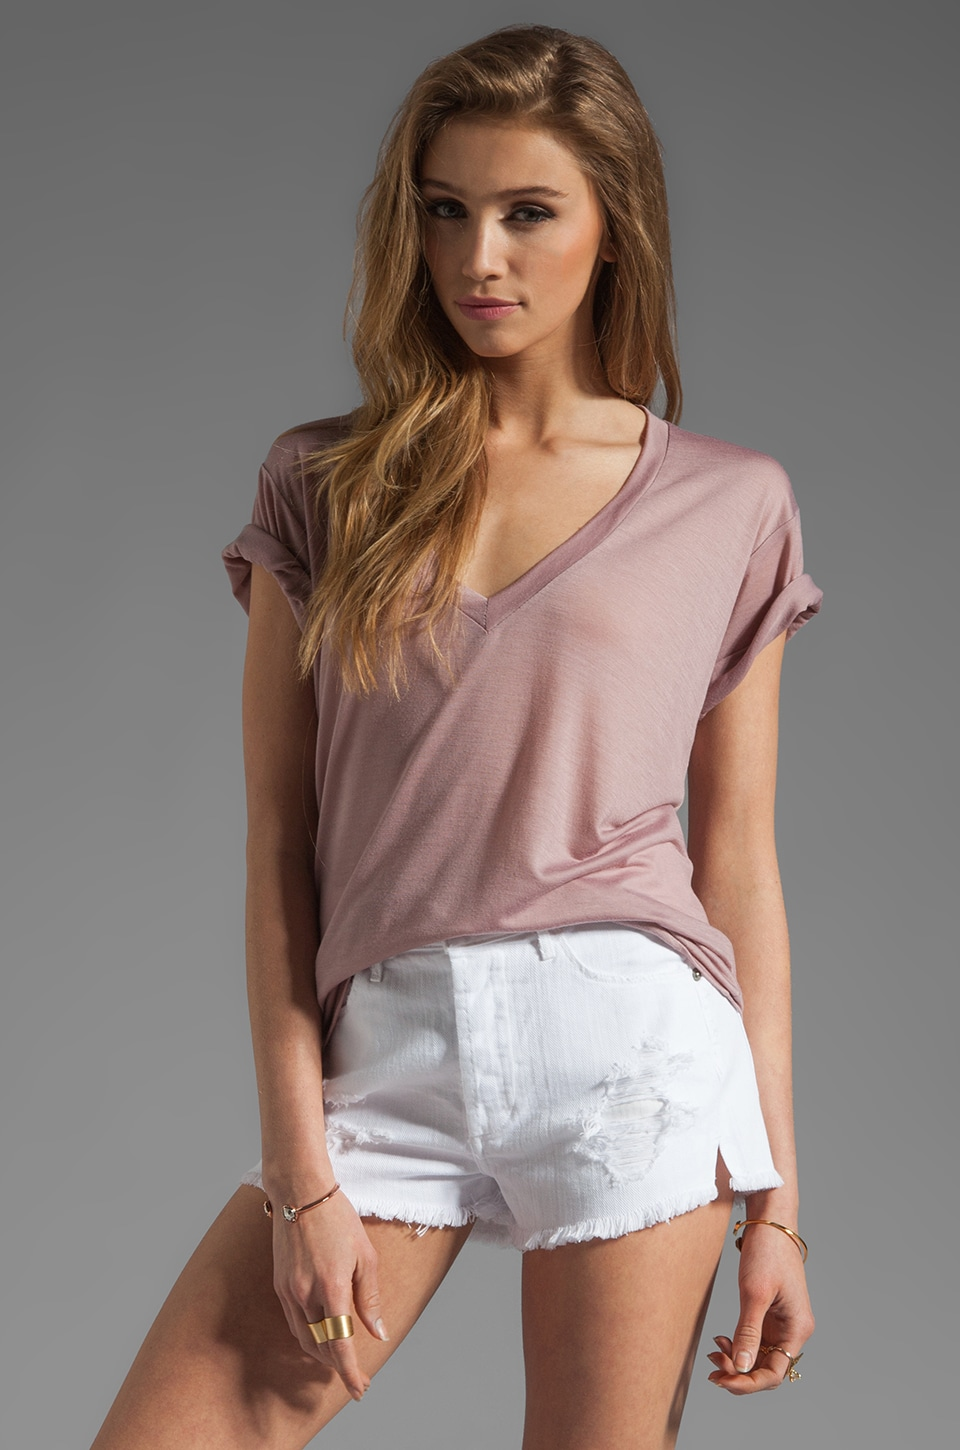 A Fine Line Levi V Neck Tee in Mauve